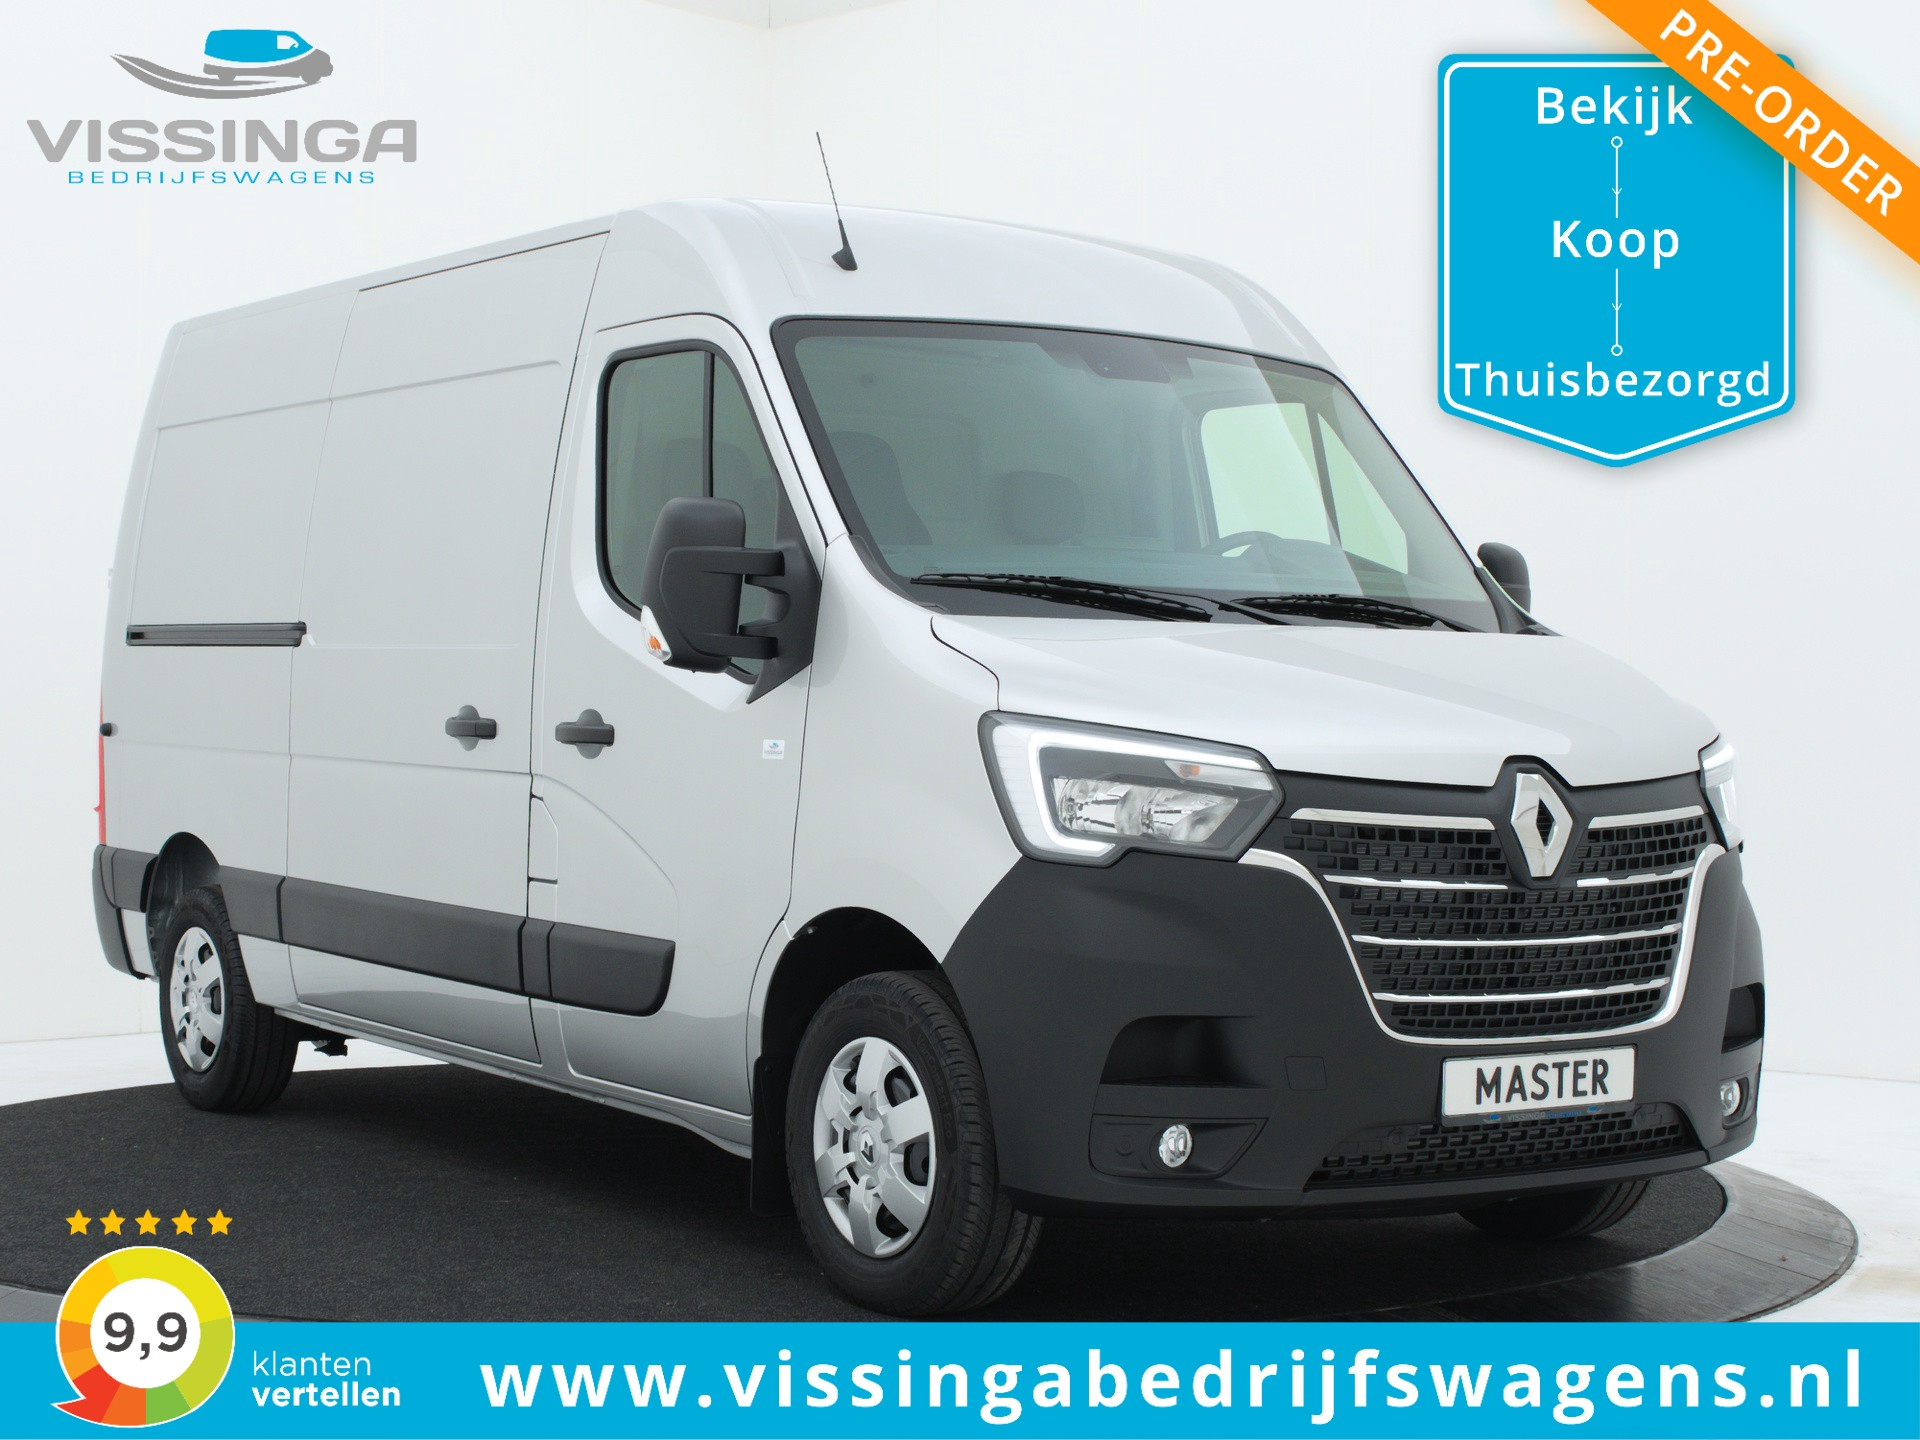 Renault Master T35 2.3 dCi L2H2 180 pk Twin-Turbo Light Duty